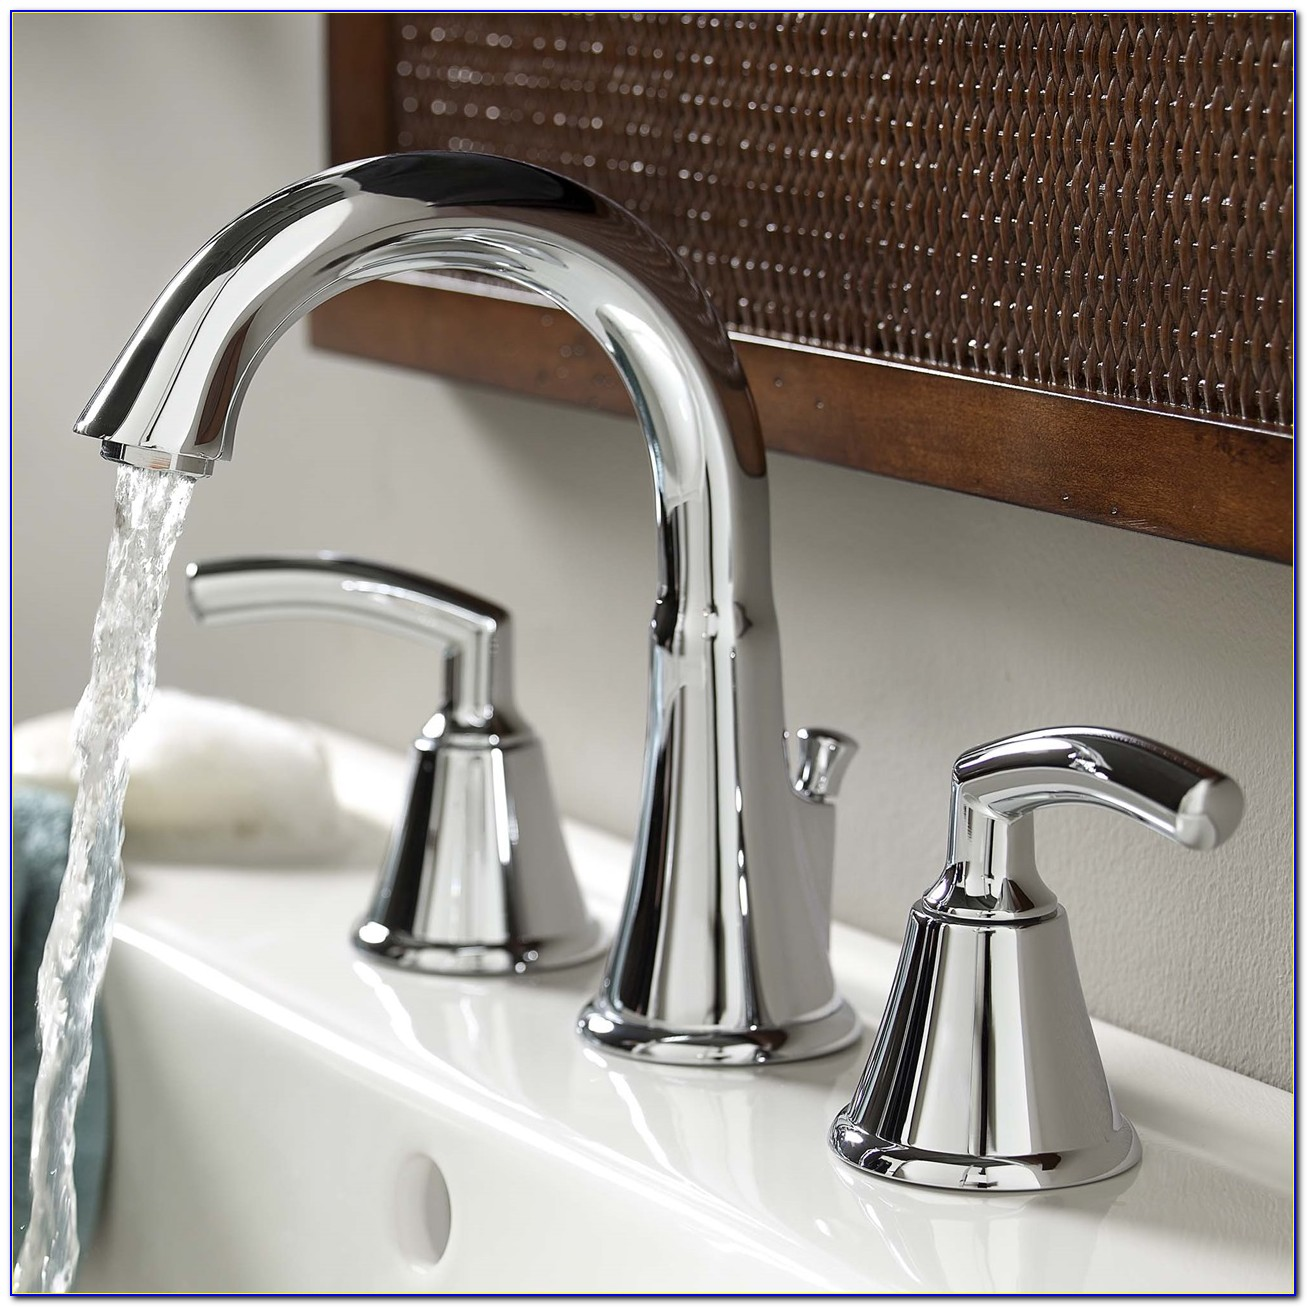 8 Inch Spread Bathroom Faucets